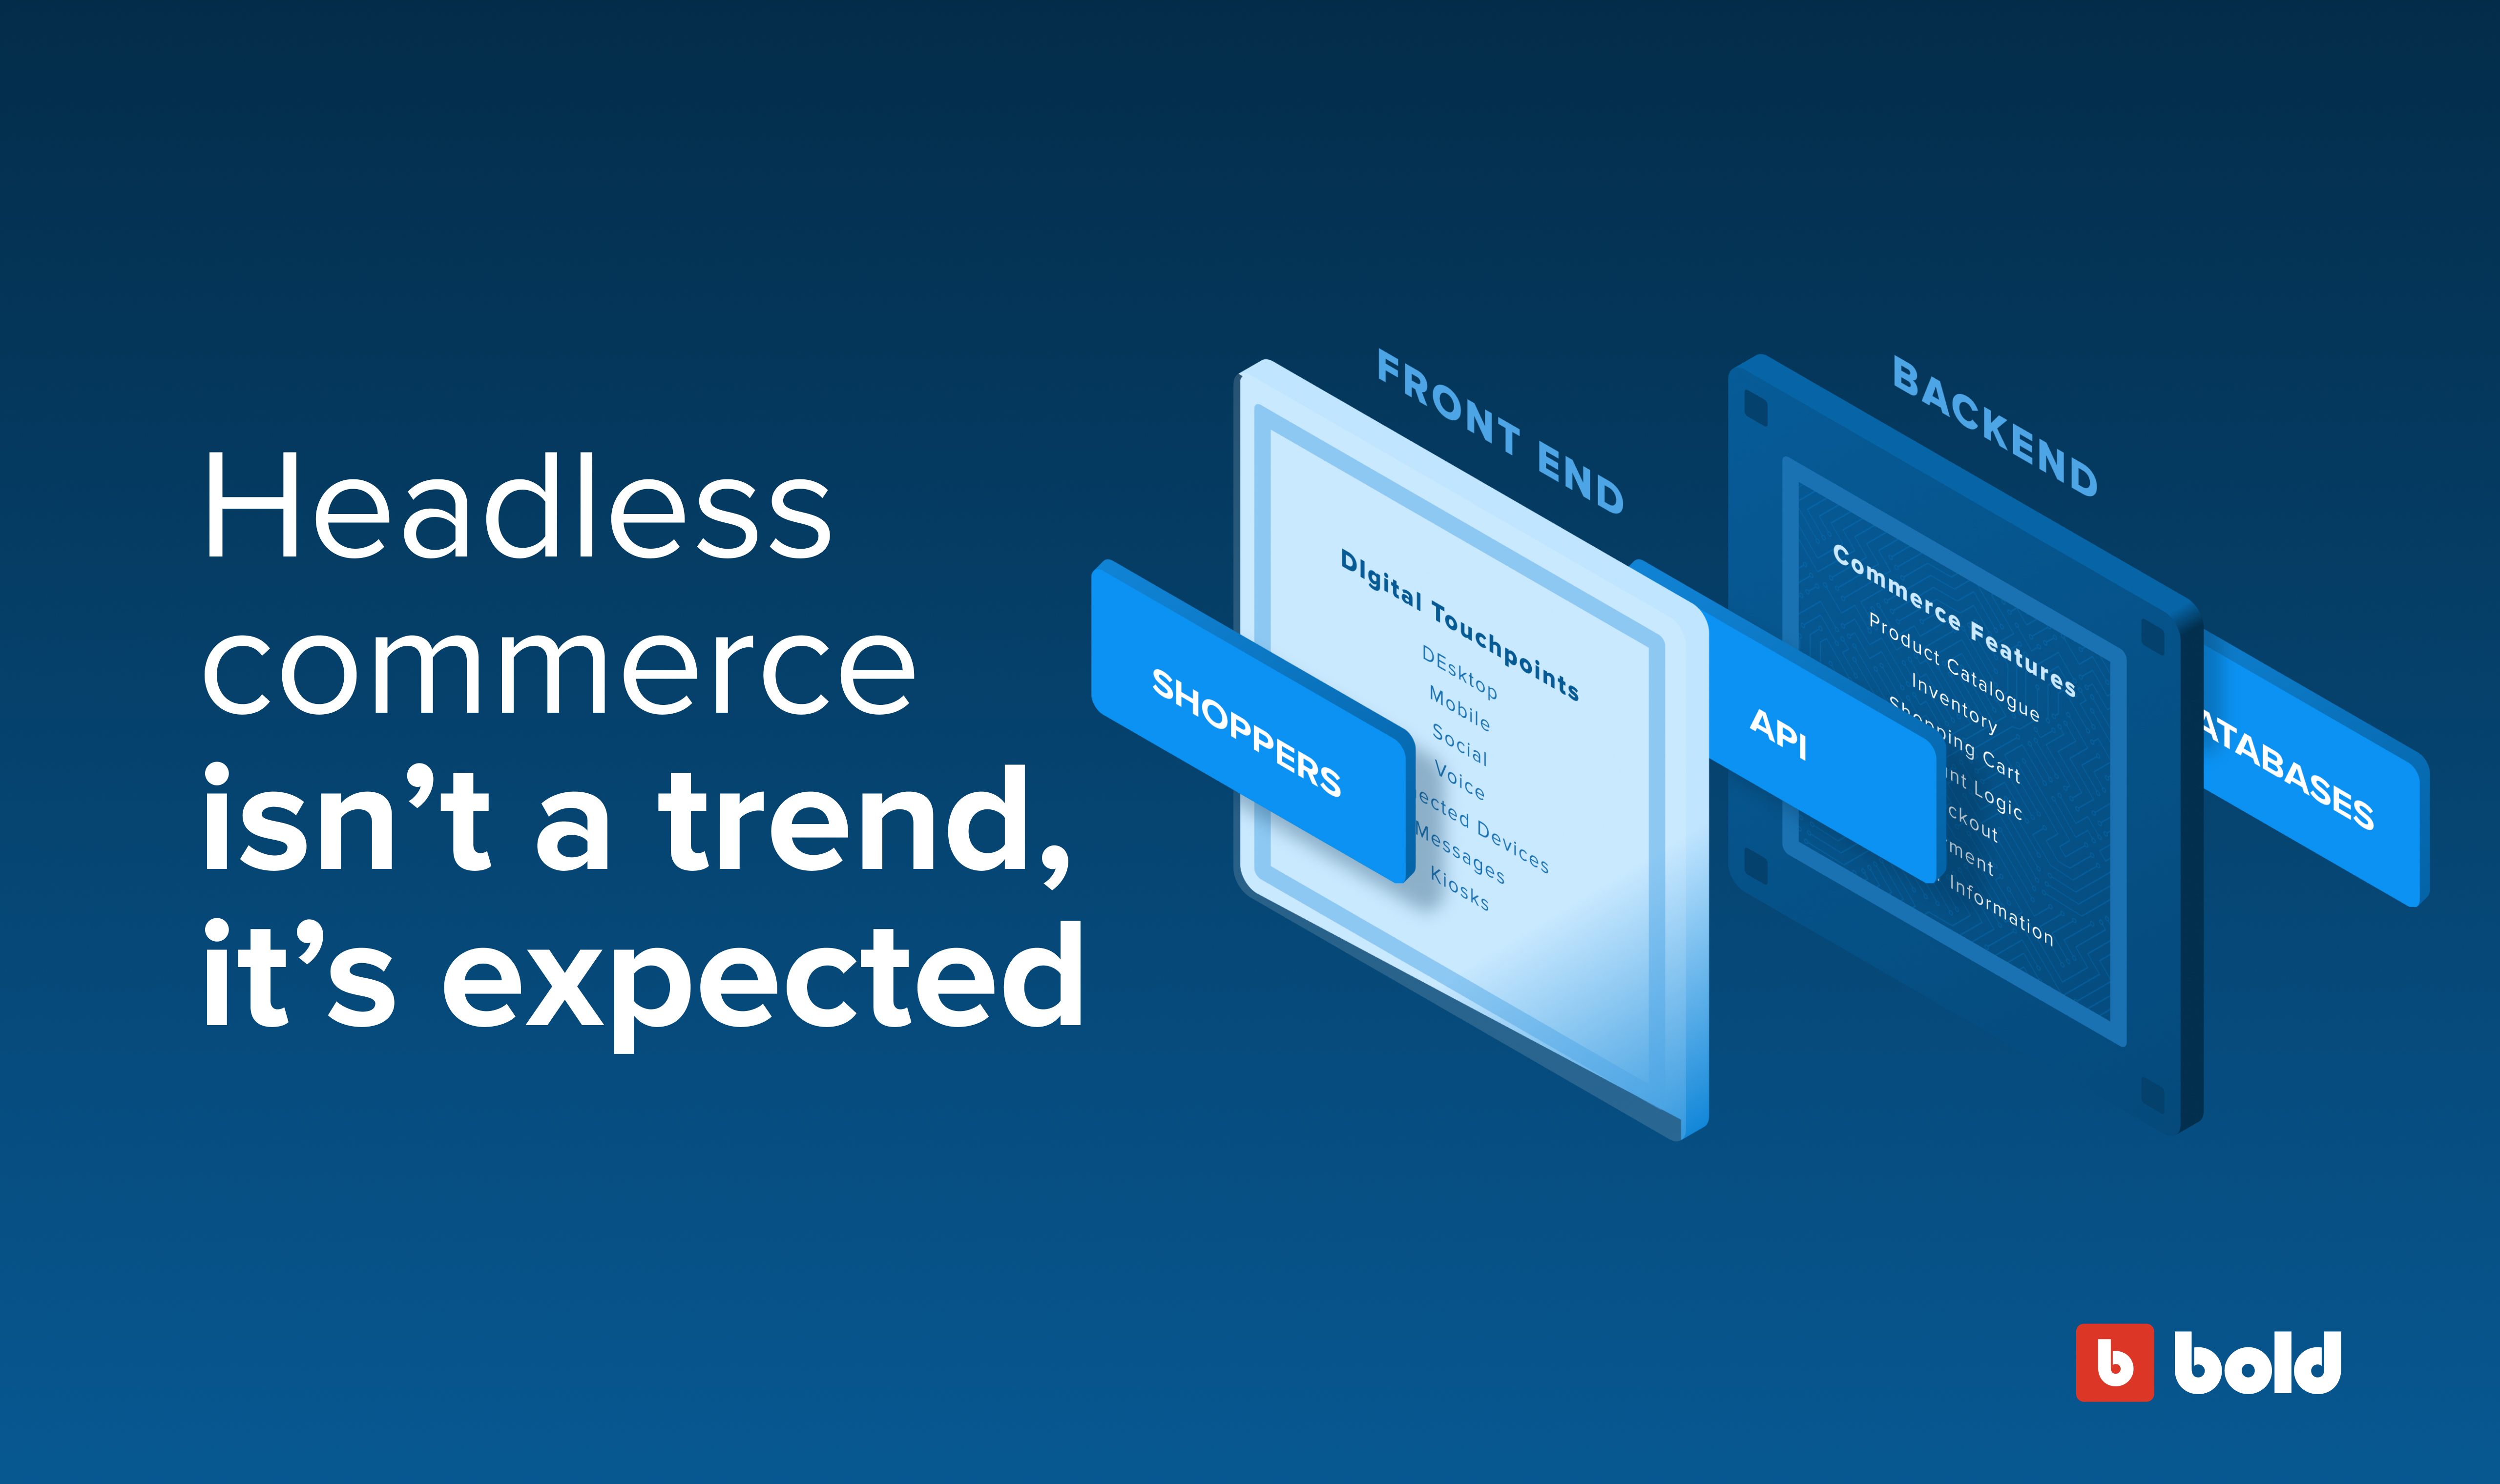 Headless commerce is expected